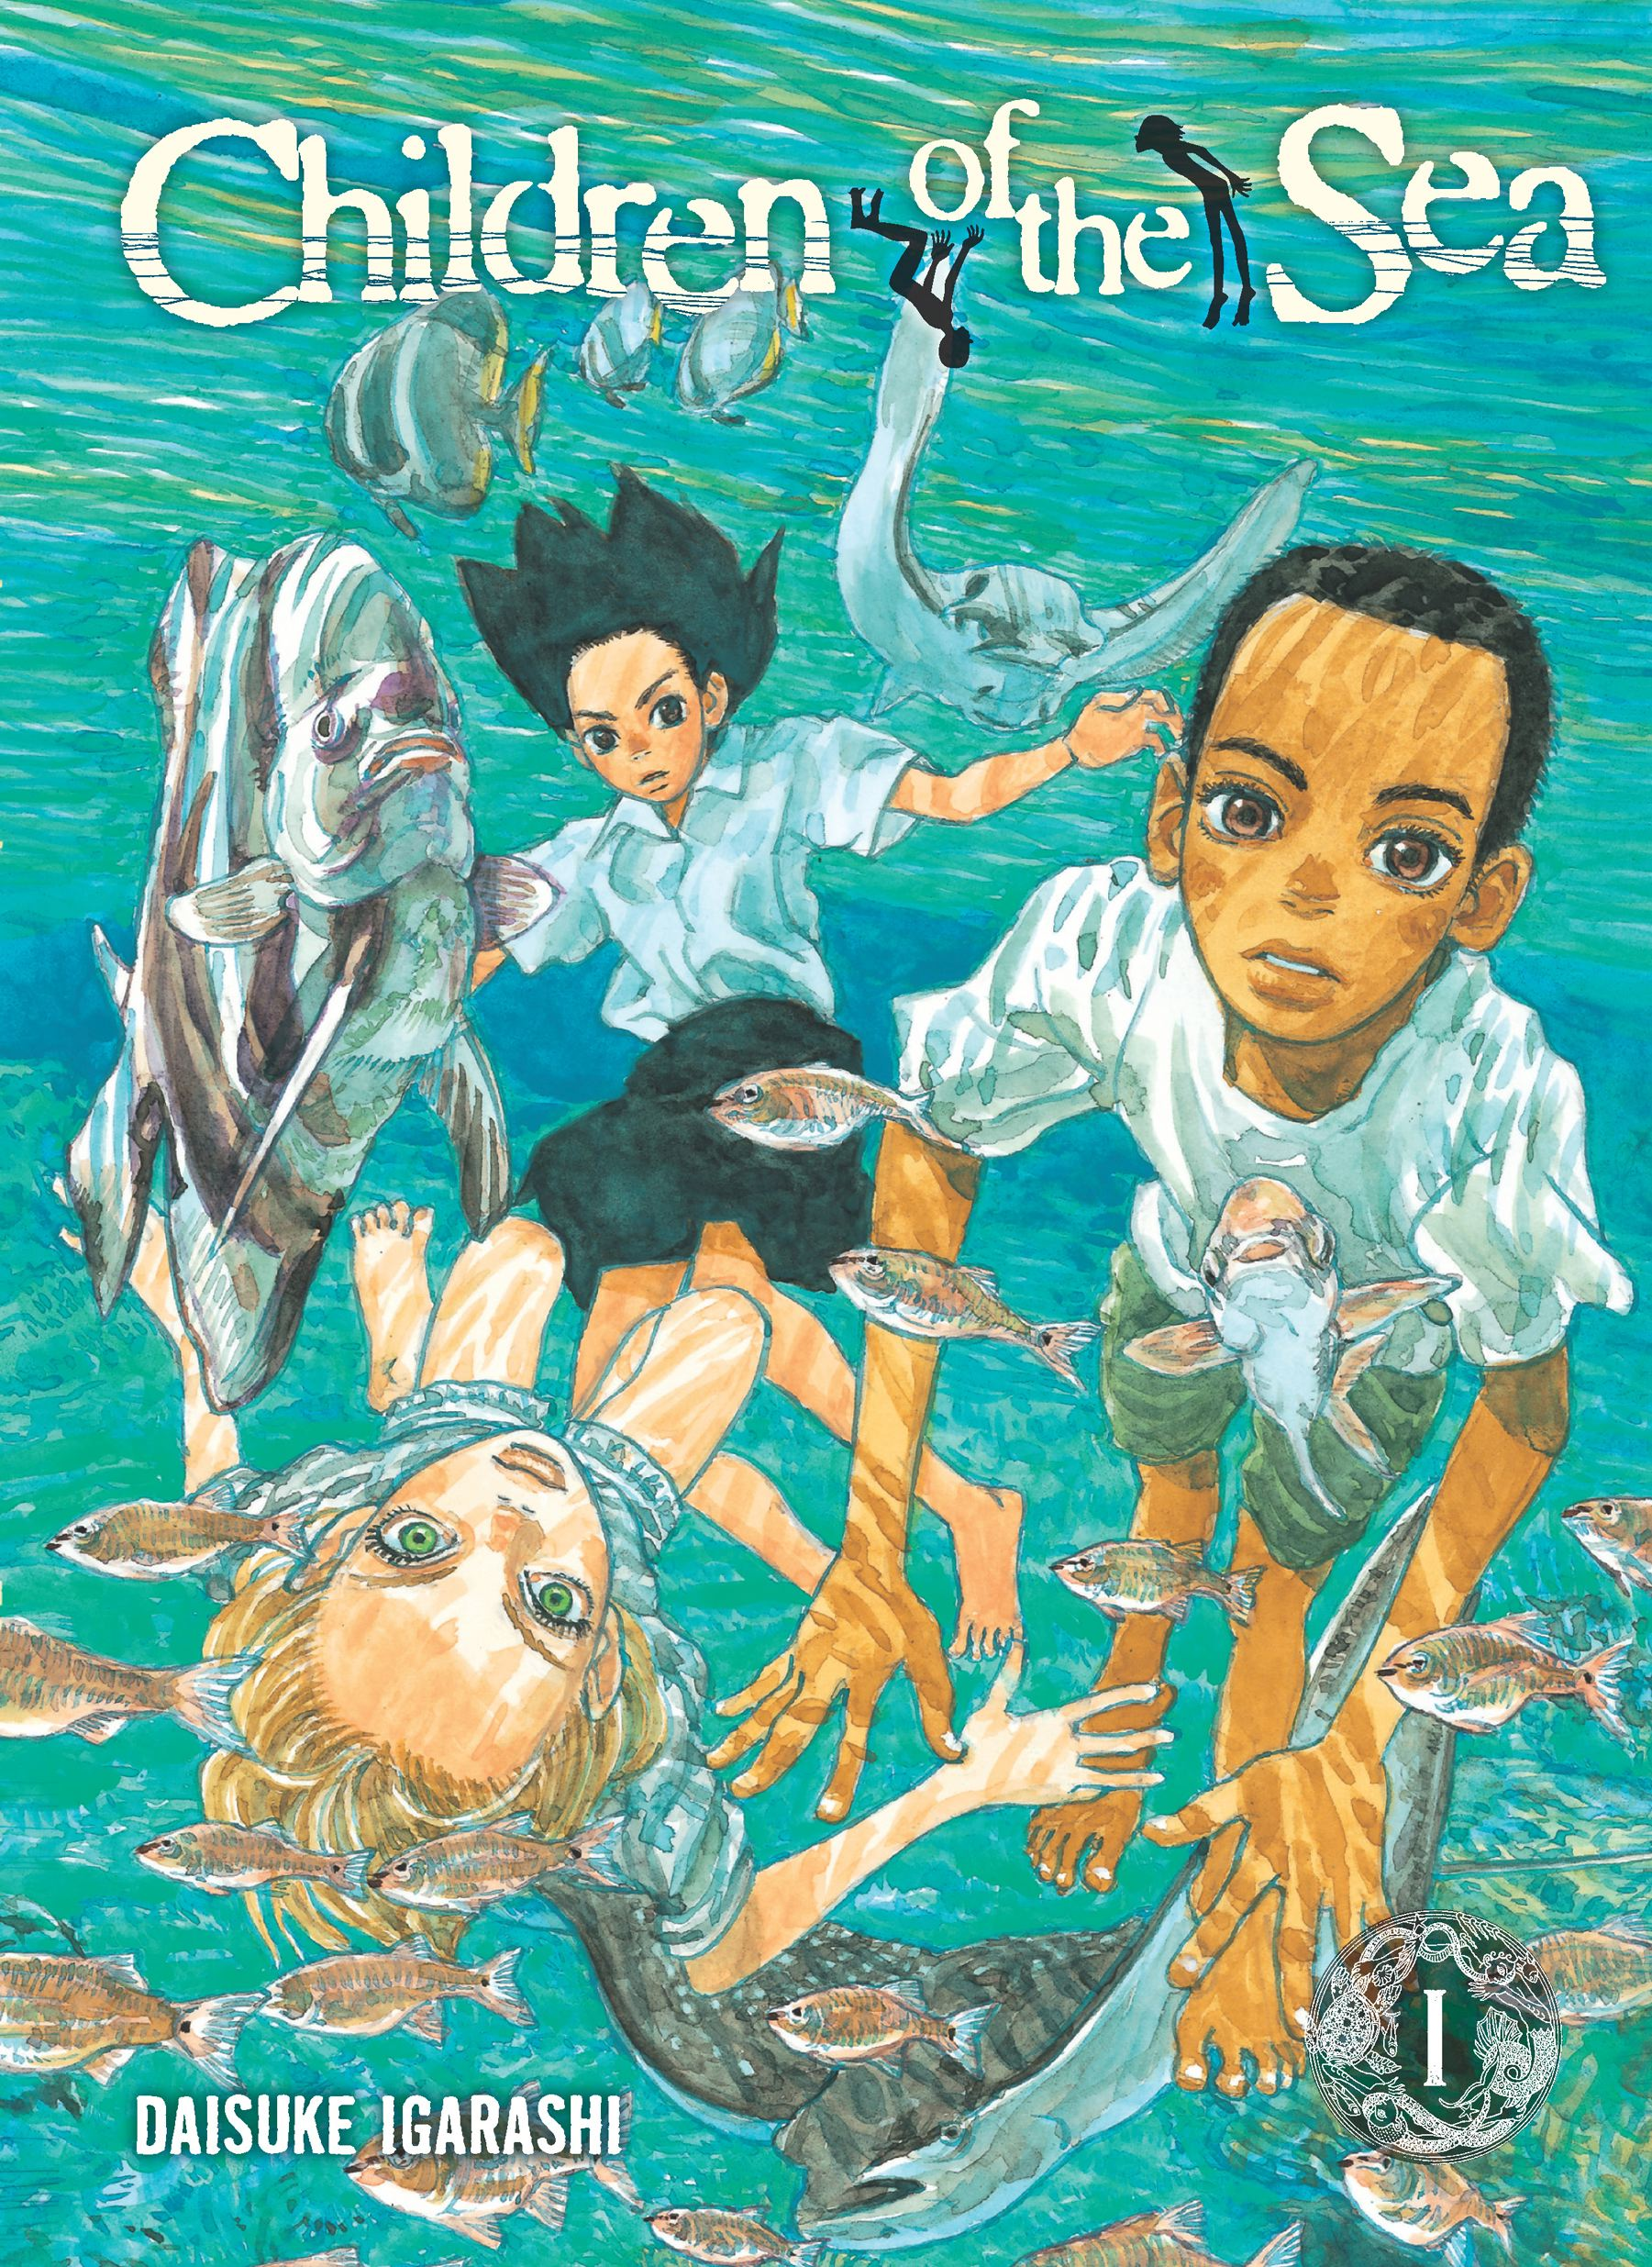 Children of the sea vol 1 9781421529141 hr